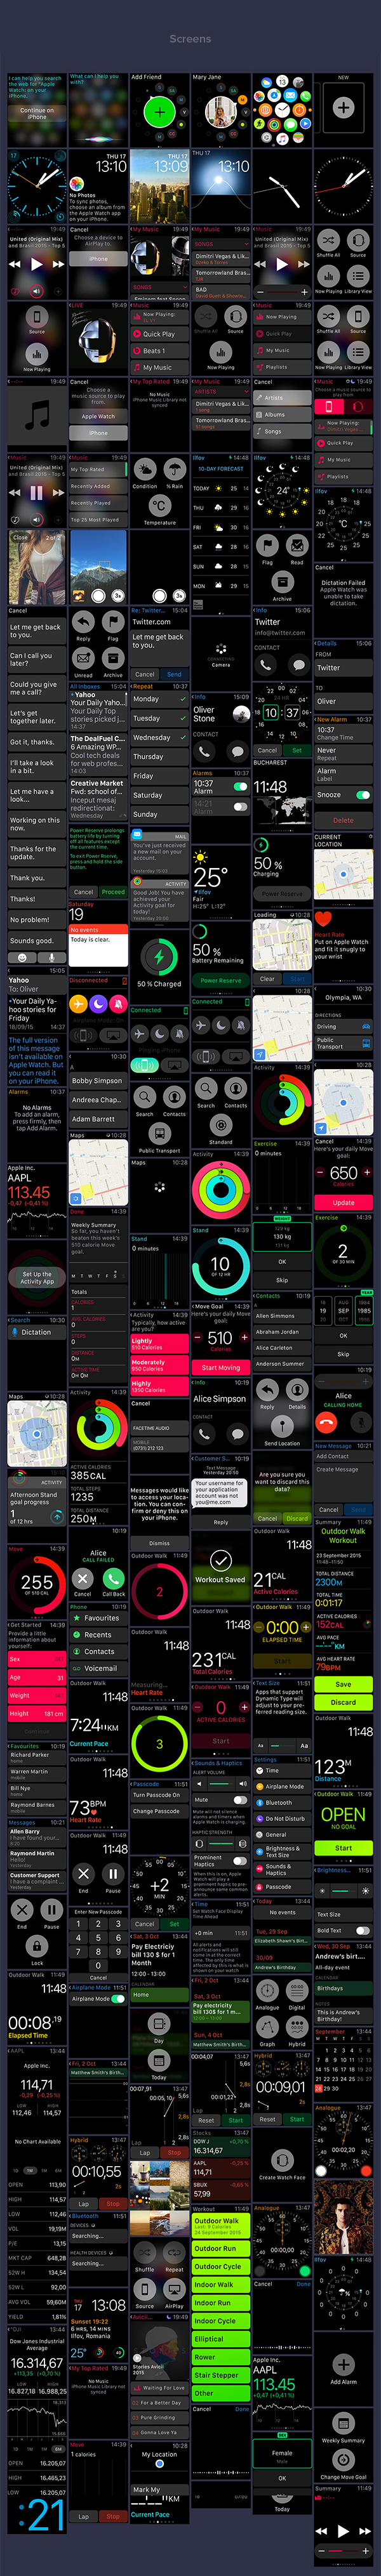 Apple WatchOS 2 Human Interface Complete UI Kit-Apple Watch Screens